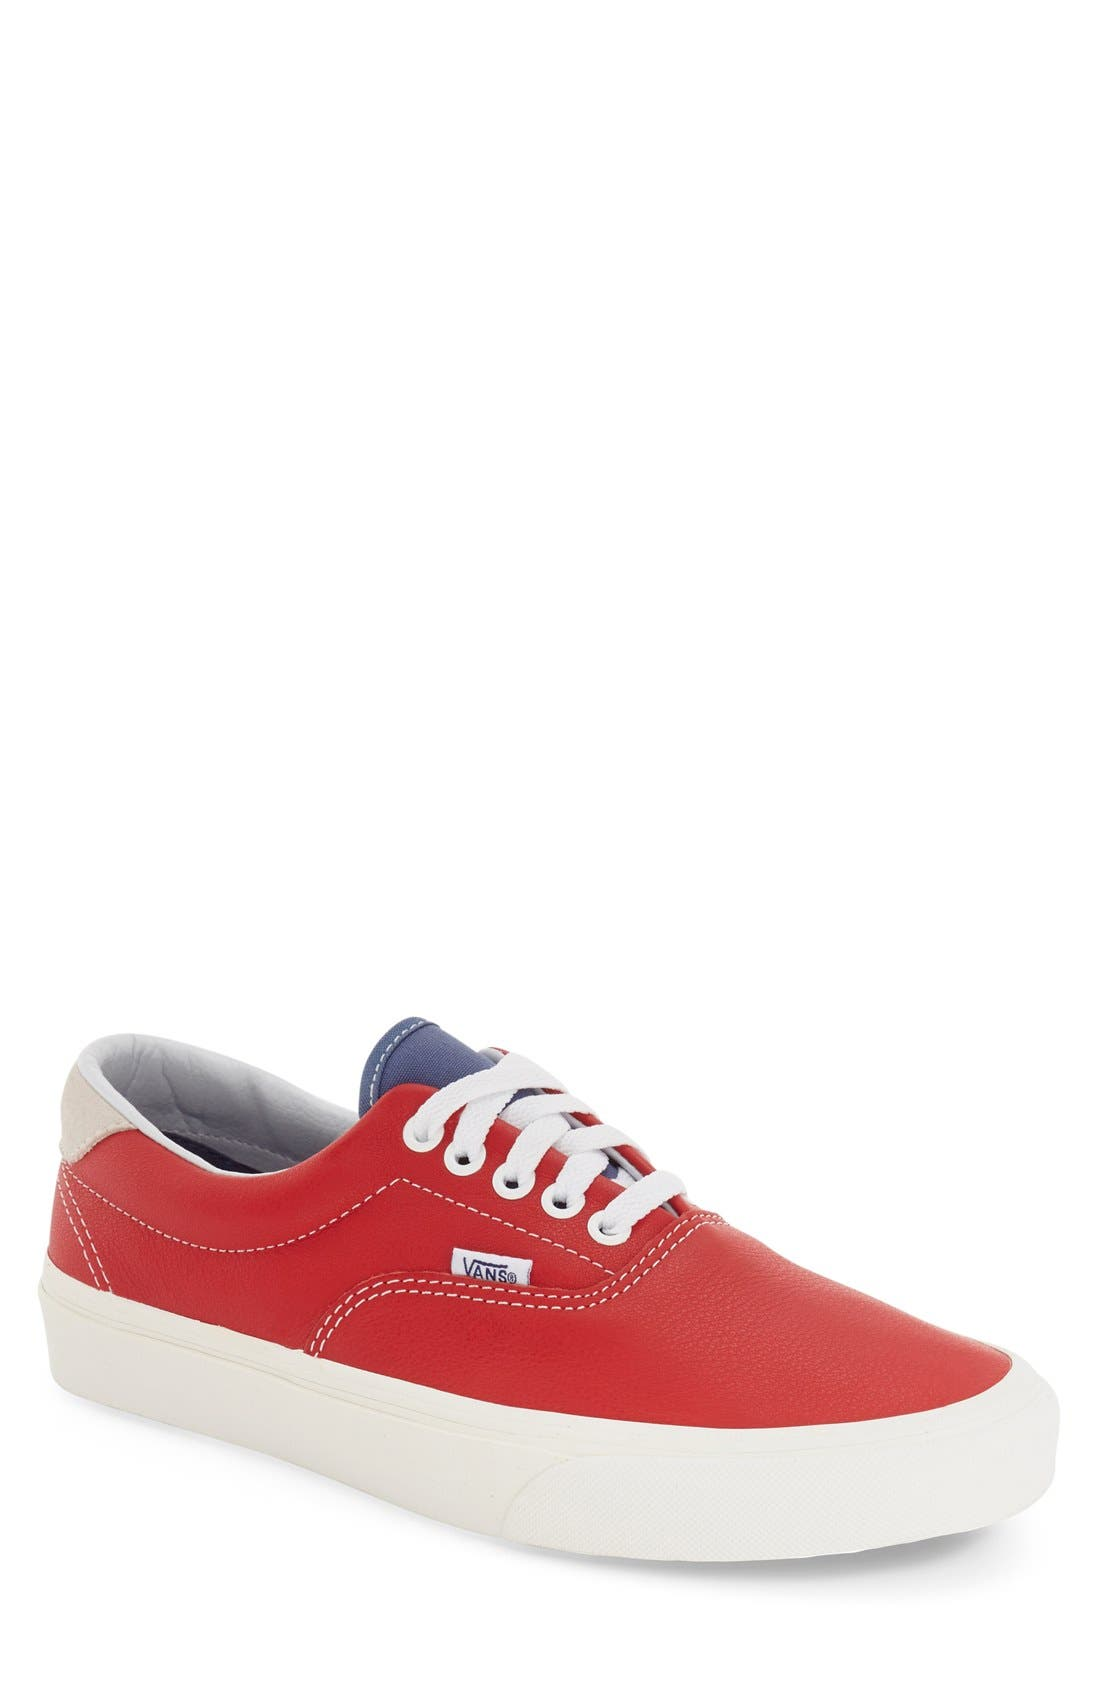 Alternate Image 1 Selected - Vans 'Cali - Era 59' Sneaker (Men)